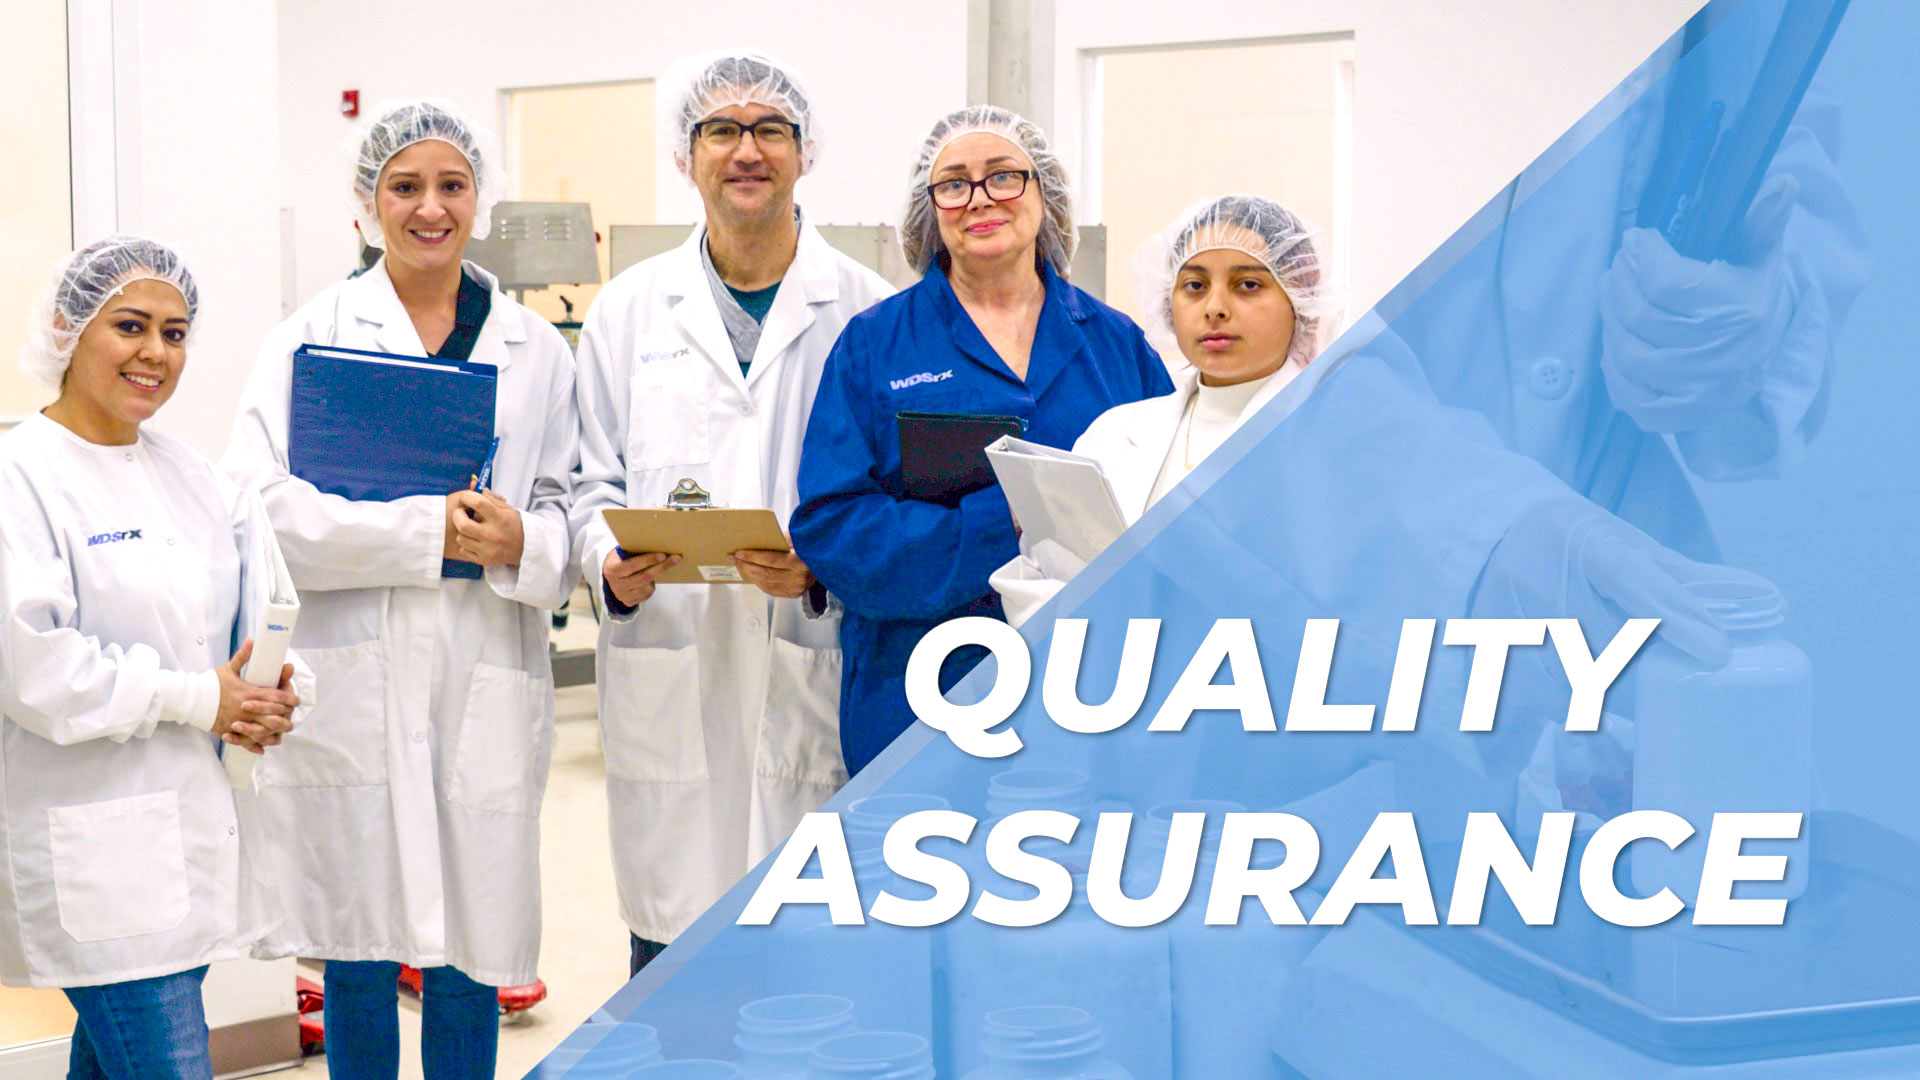 The quality assurance team oversees that sops and other policies are in place for the pharmaceutical logistics company WDSrx for news highlights